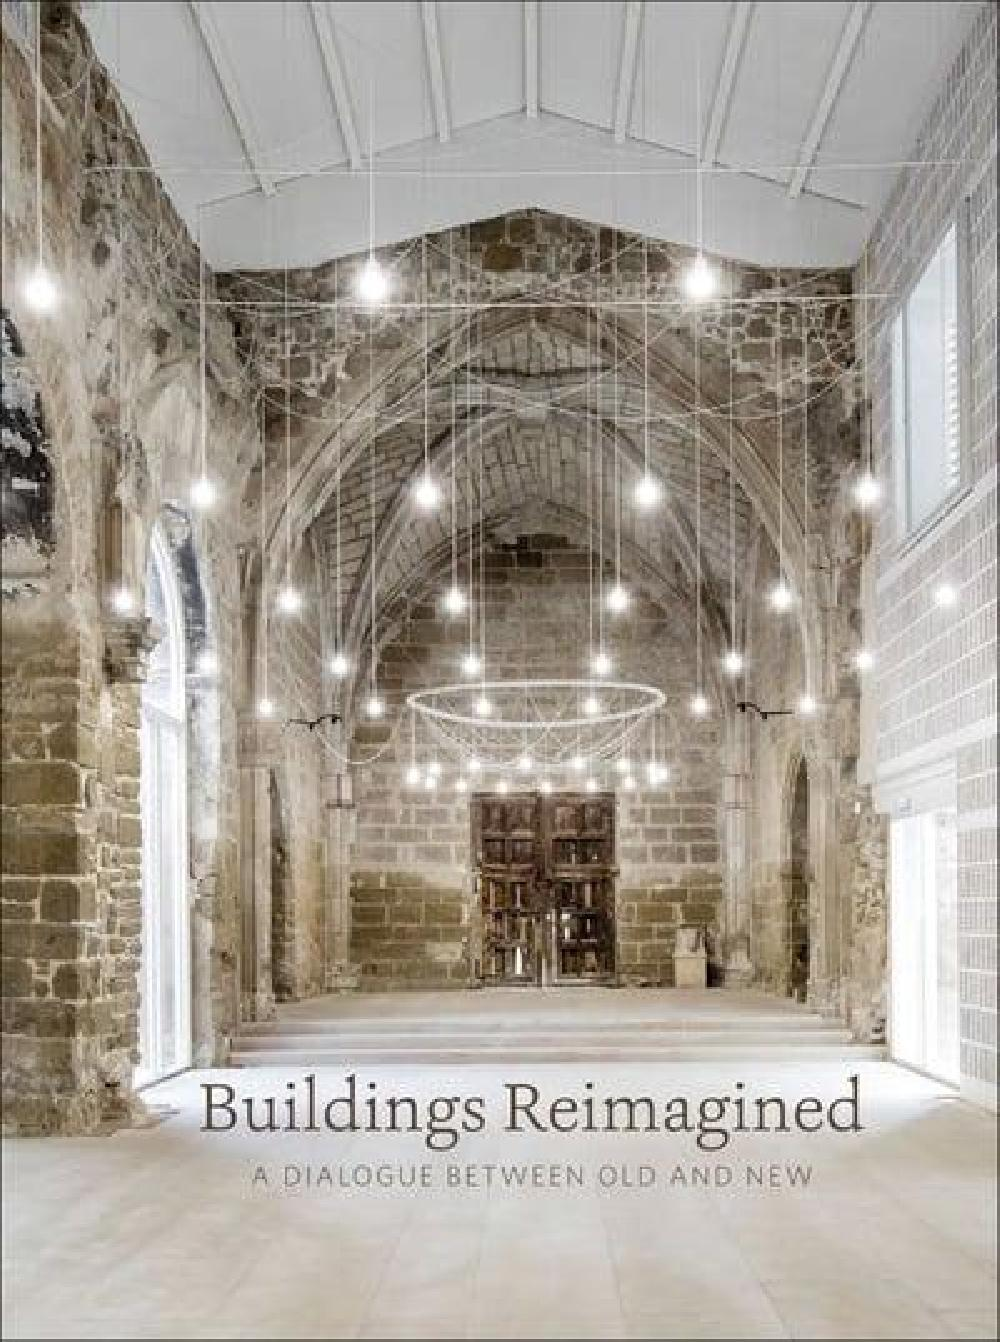 Buildings Reimagined A Dialogue Between Old and New